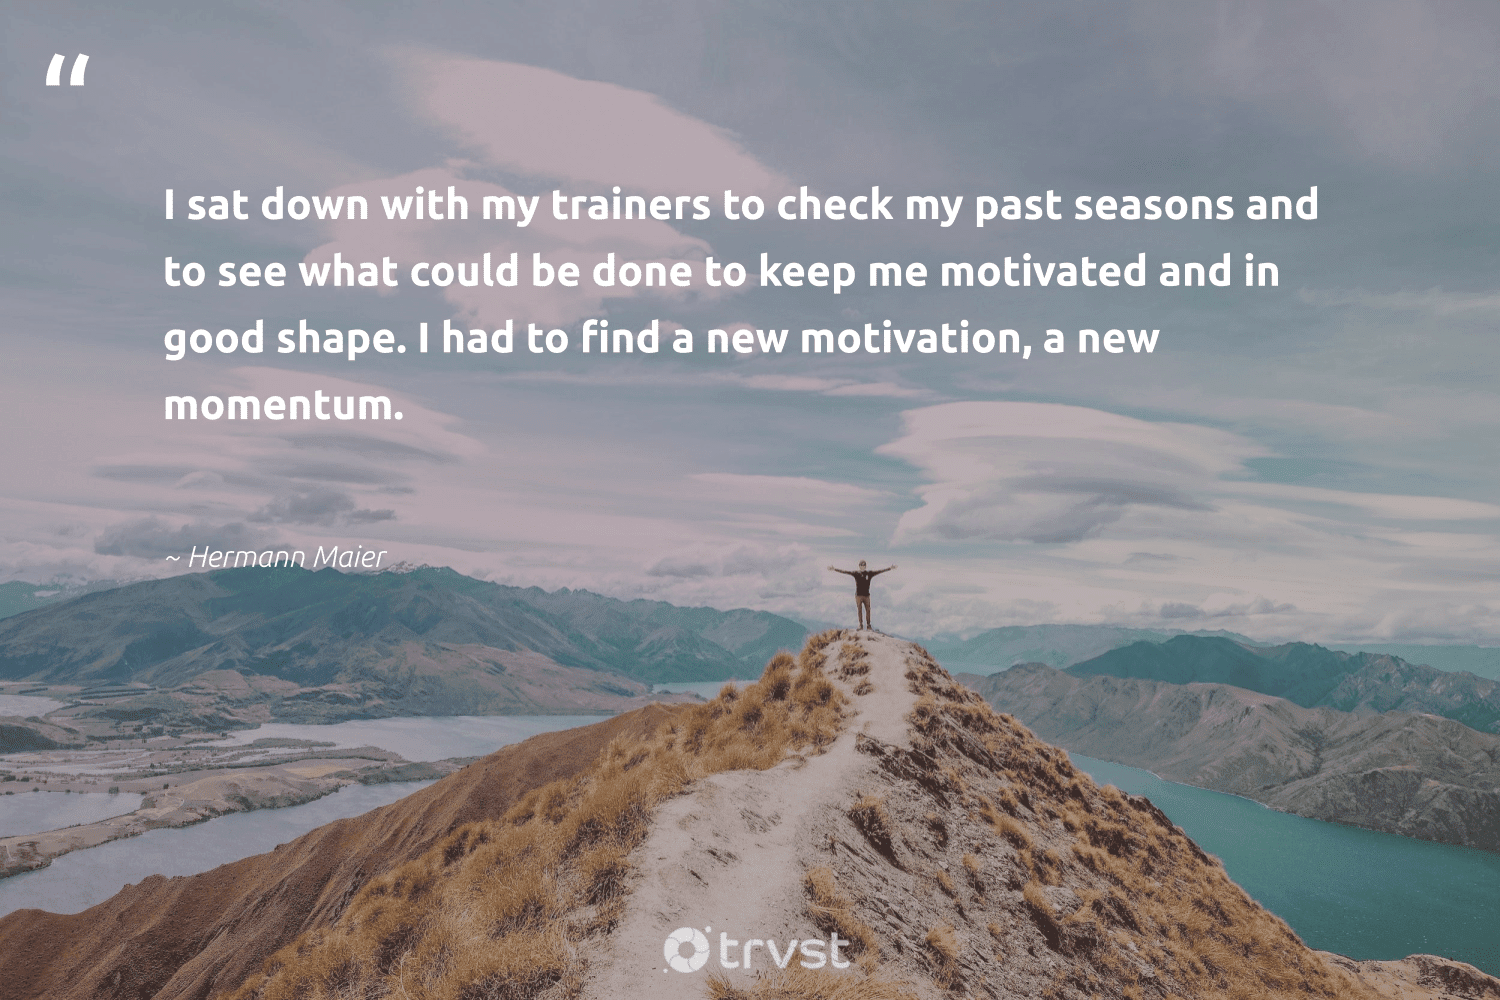 """""""I sat down with my trainers to check my past seasons and to see what could be done to keep me motivated and in good shape. I had to find a new motivation, a new momentum.""""  - Hermann Maier #trvst #quotes #motivation #entrepreneurmindset #domore #changemakers #bethechange #meditation #takethefirststep #health #changetheworld #meditate"""